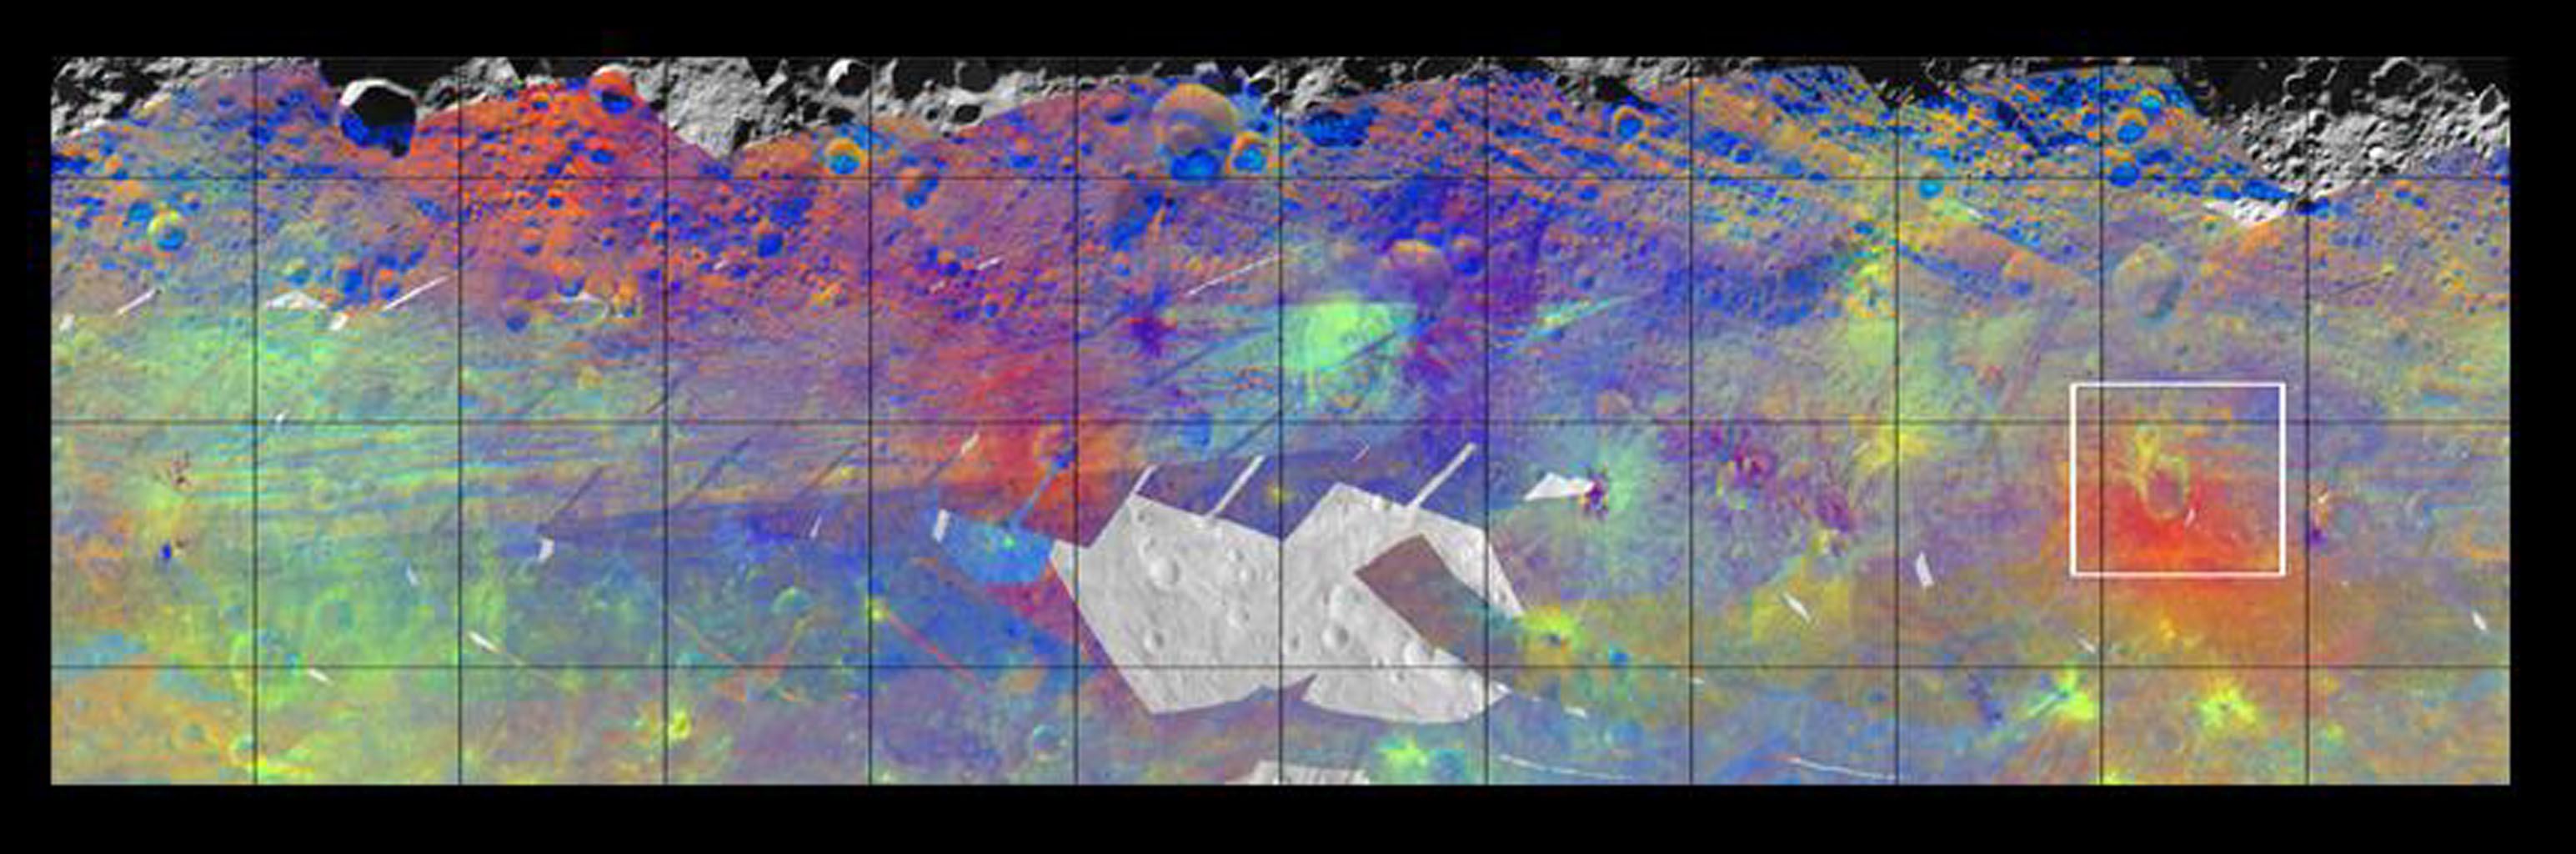 This image from NASA's Dawn mission shows the varied minerals on the surface of the giant asteroid Vesta in false color.